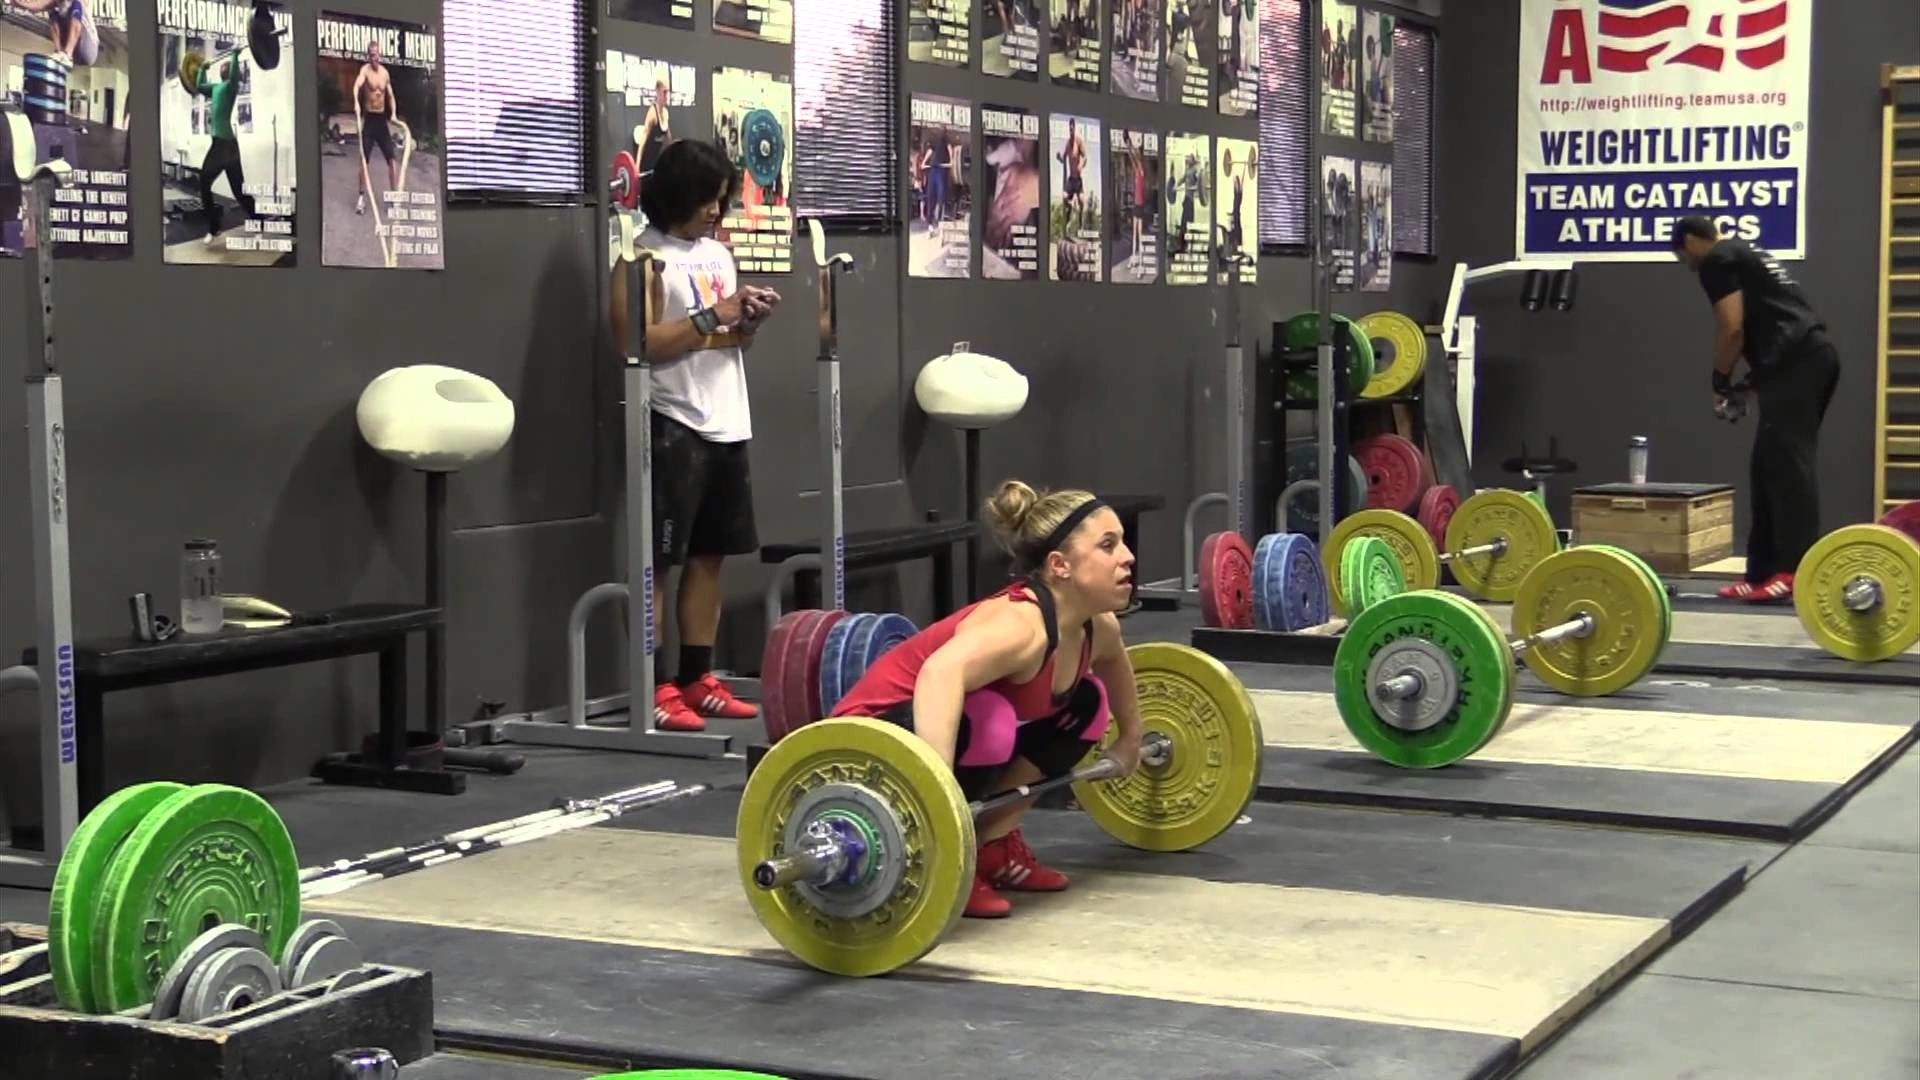 Olympic Weightlifting 2-25-15 – Snatch, Back Squat, Clean, Power Snatch,  Snatch Pull on Riser